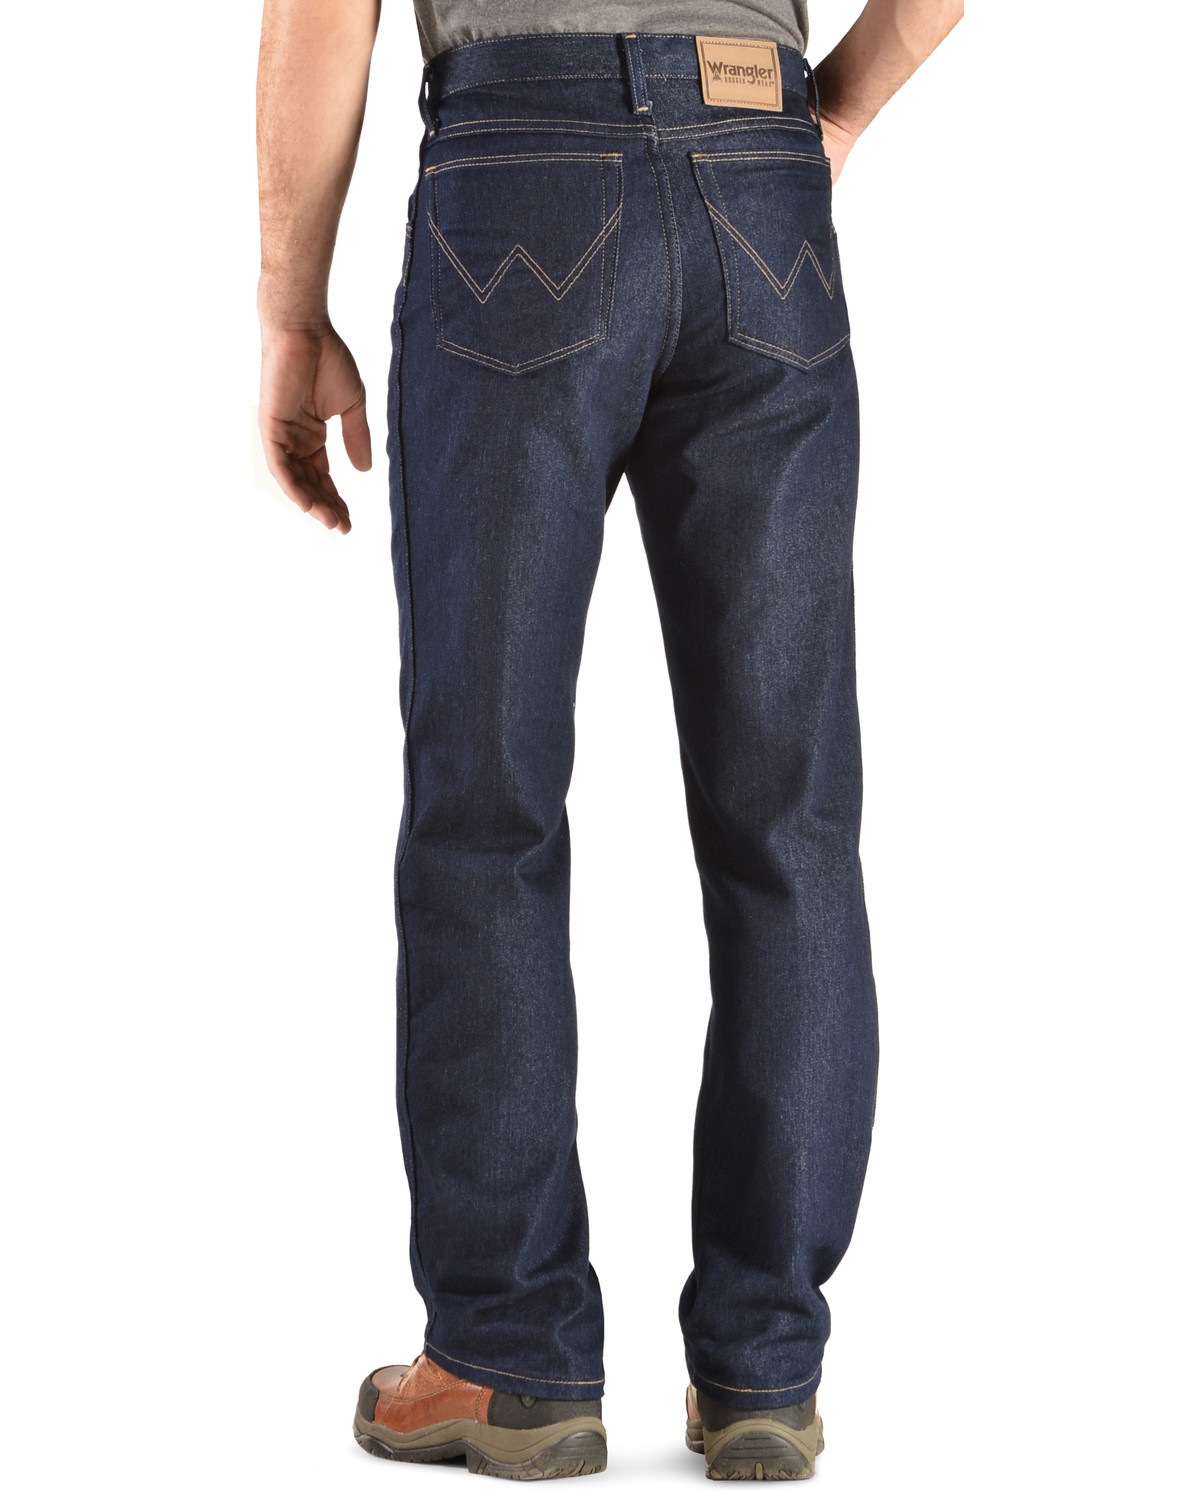 Wrangler Rugged Wear Stretch Regular Fit Jeans Indigo Hi Res